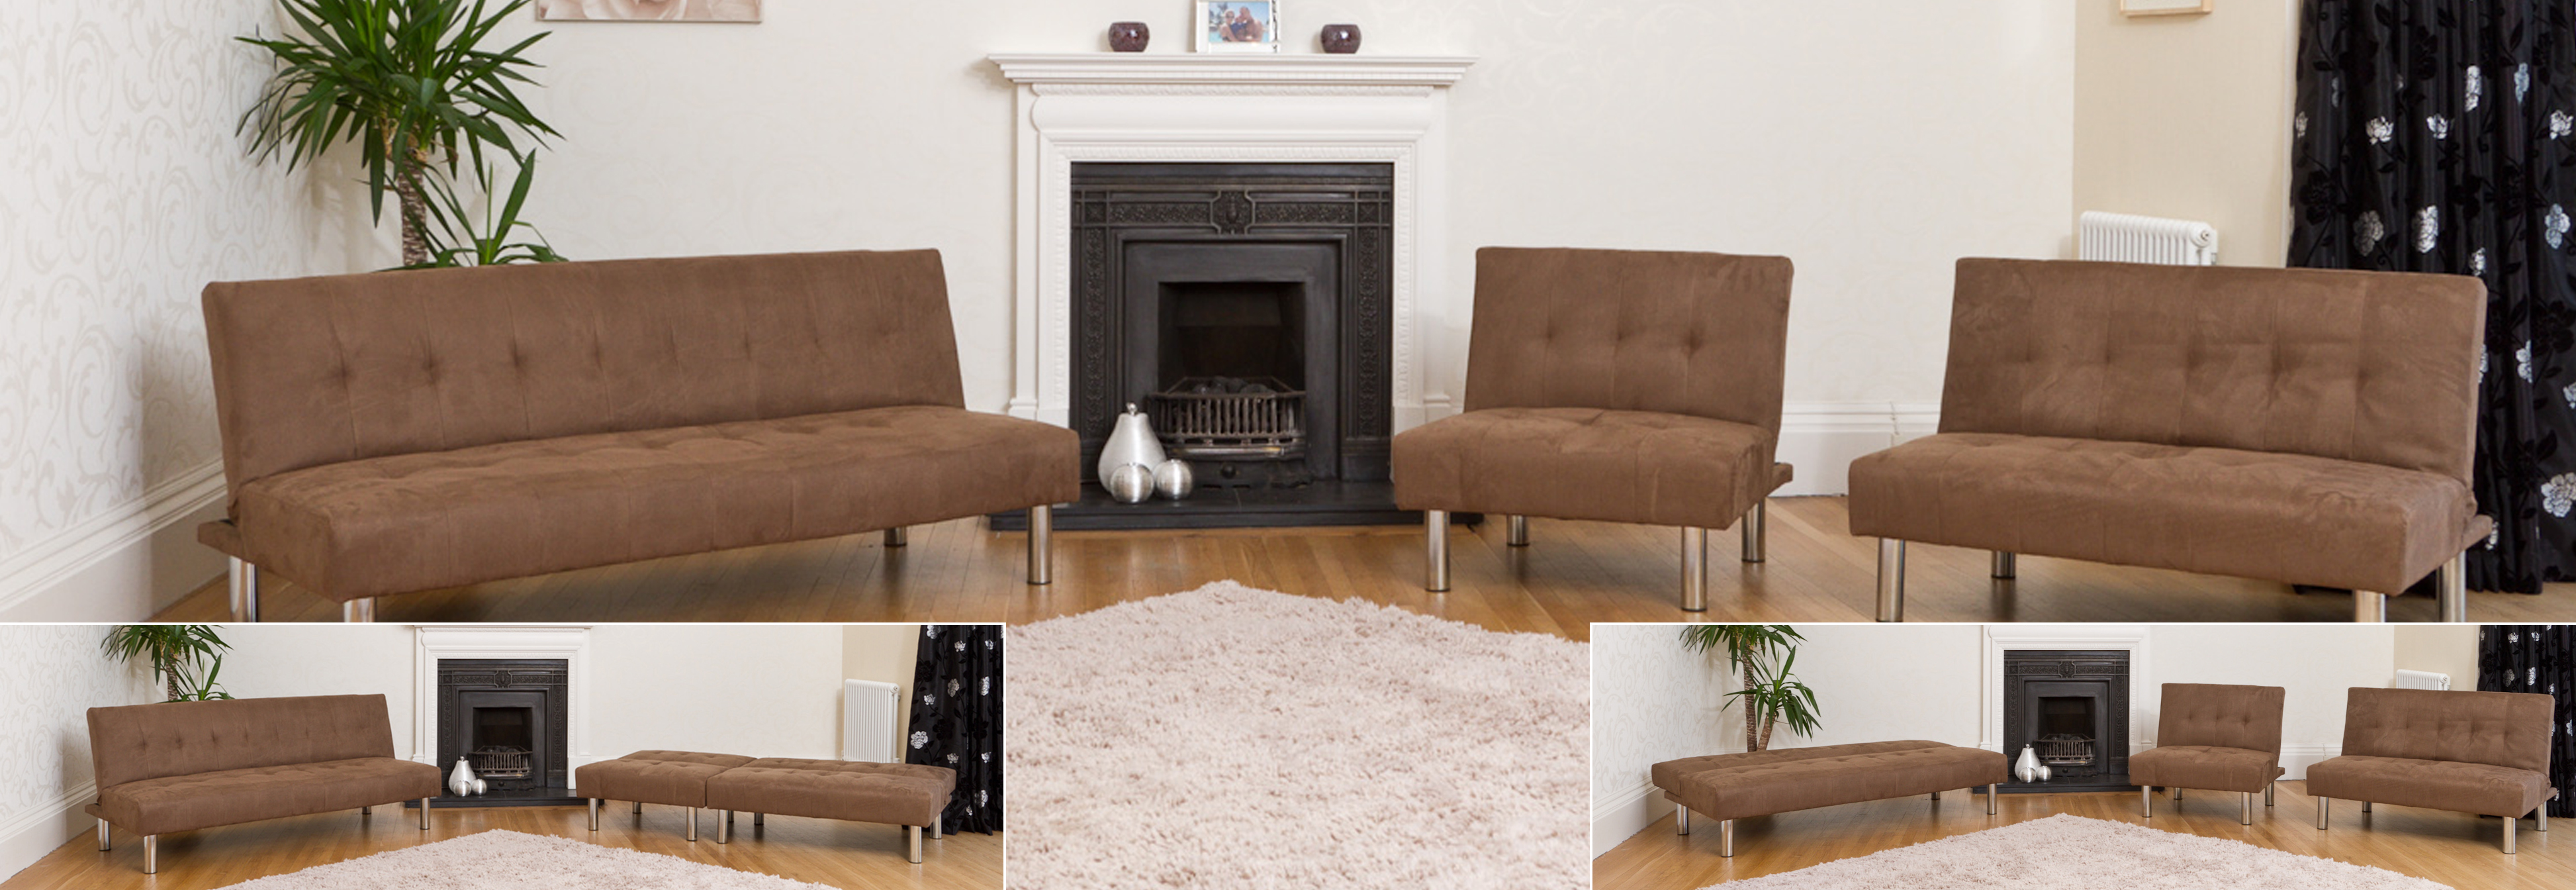 Harewood Reclining Sofabed cappuccino